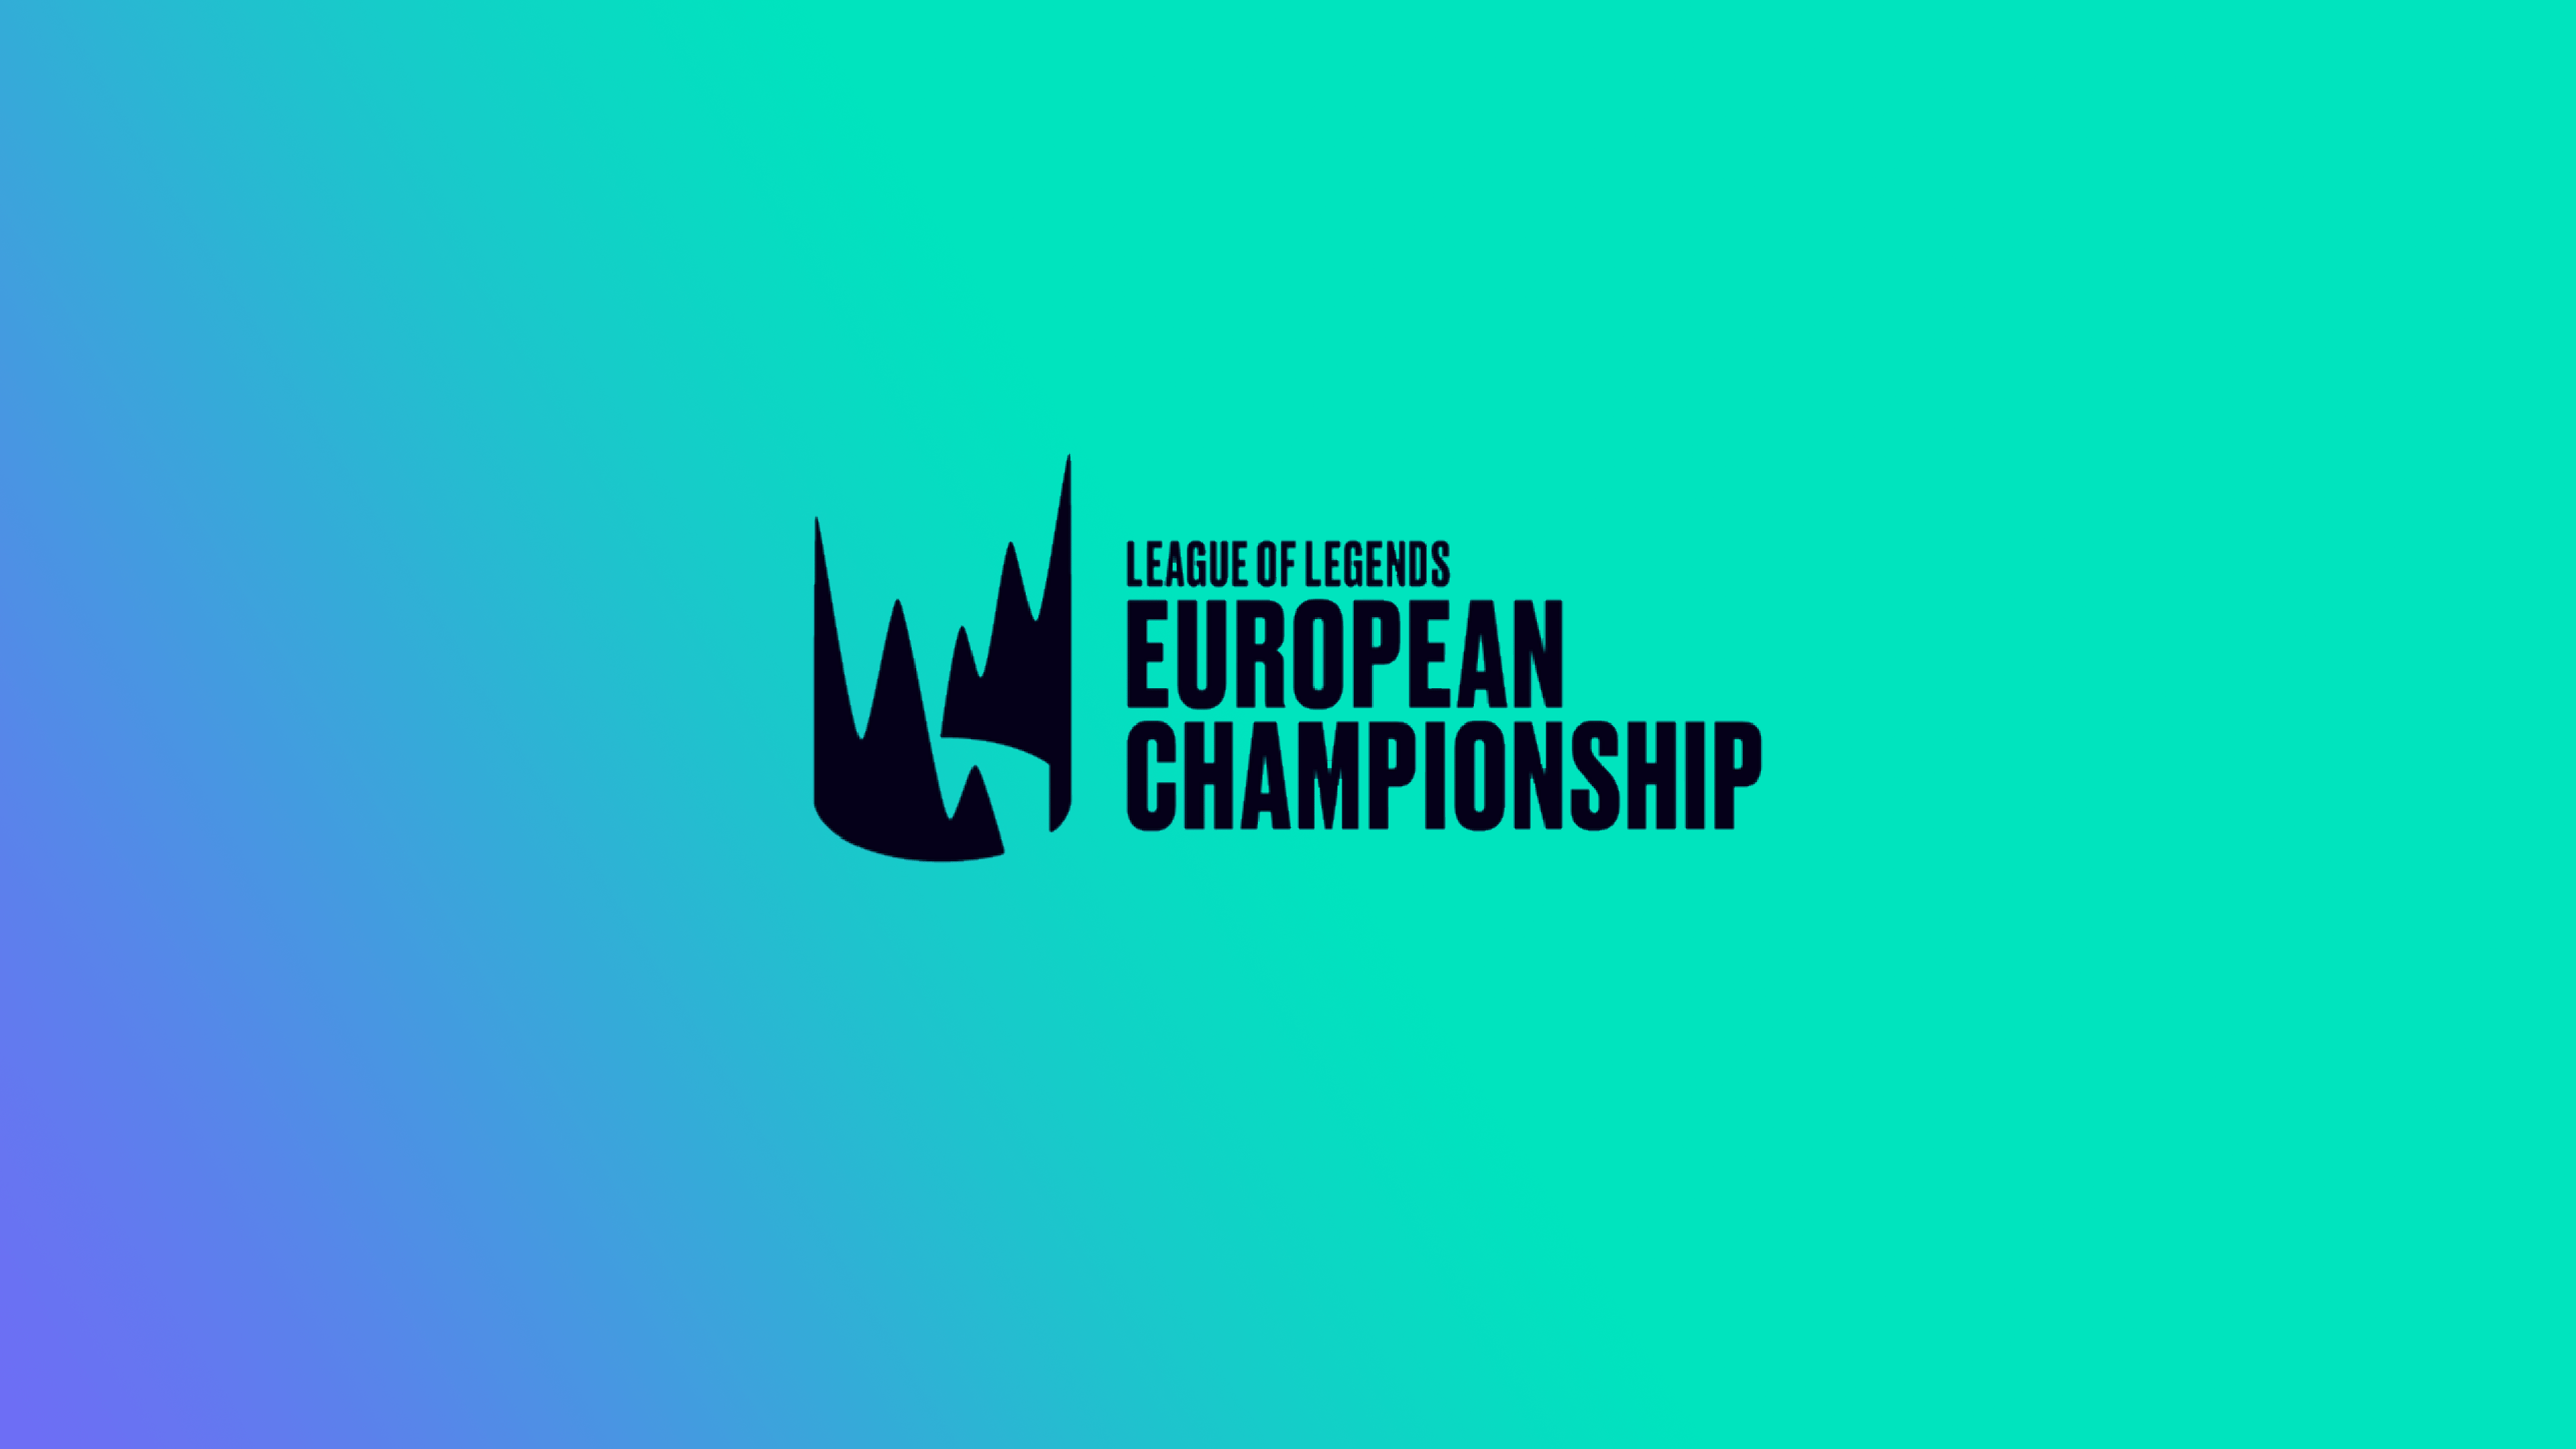 G2 Sweep Fnatic 3-0 To Win The League European Championship Spring Split 2020 Playoff Race